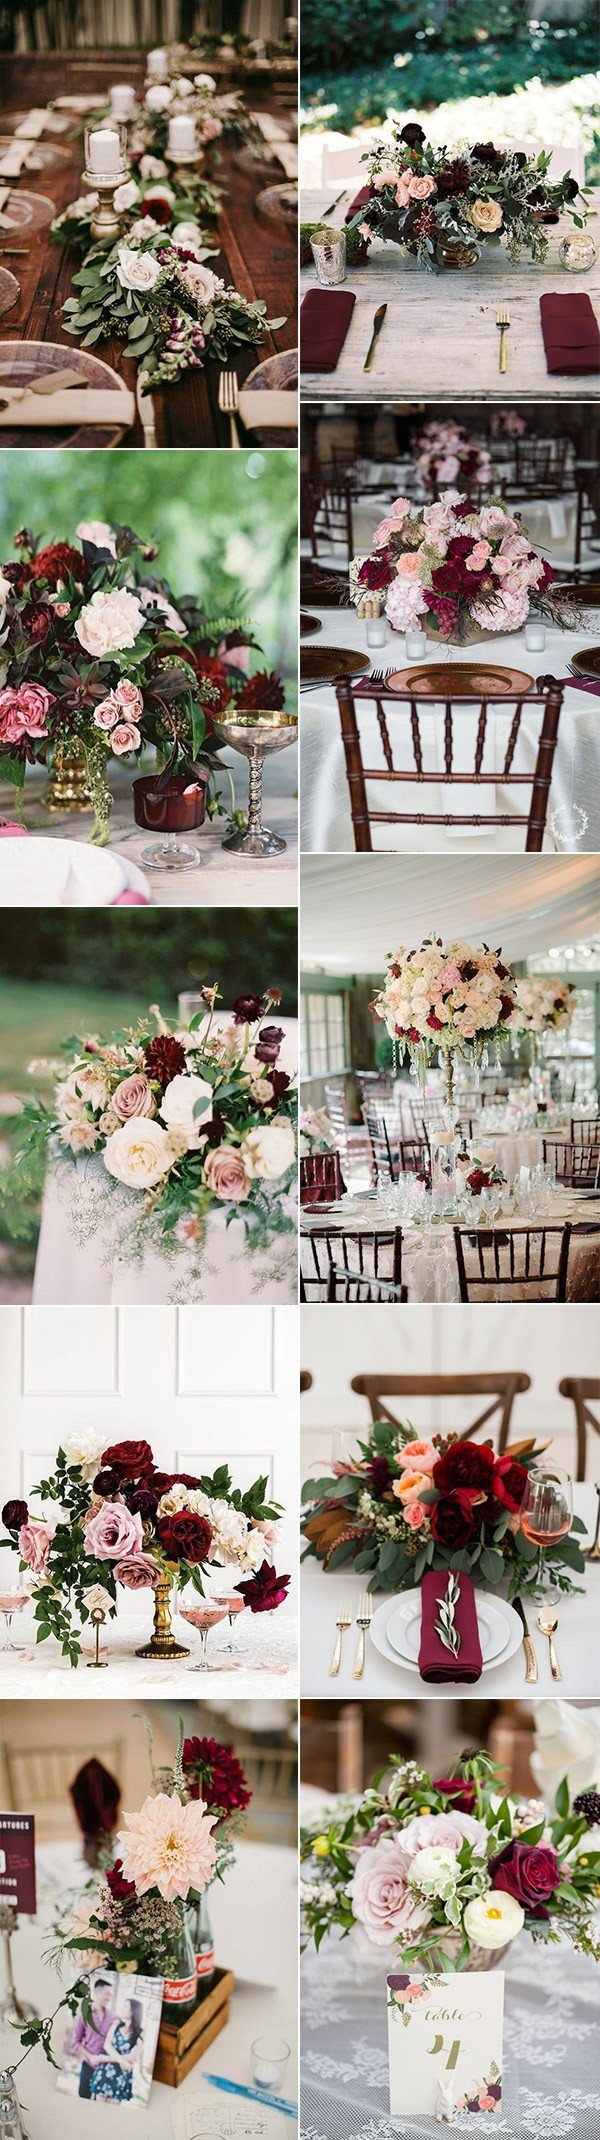 trending burgundy and blush wedding centerpiece ideas